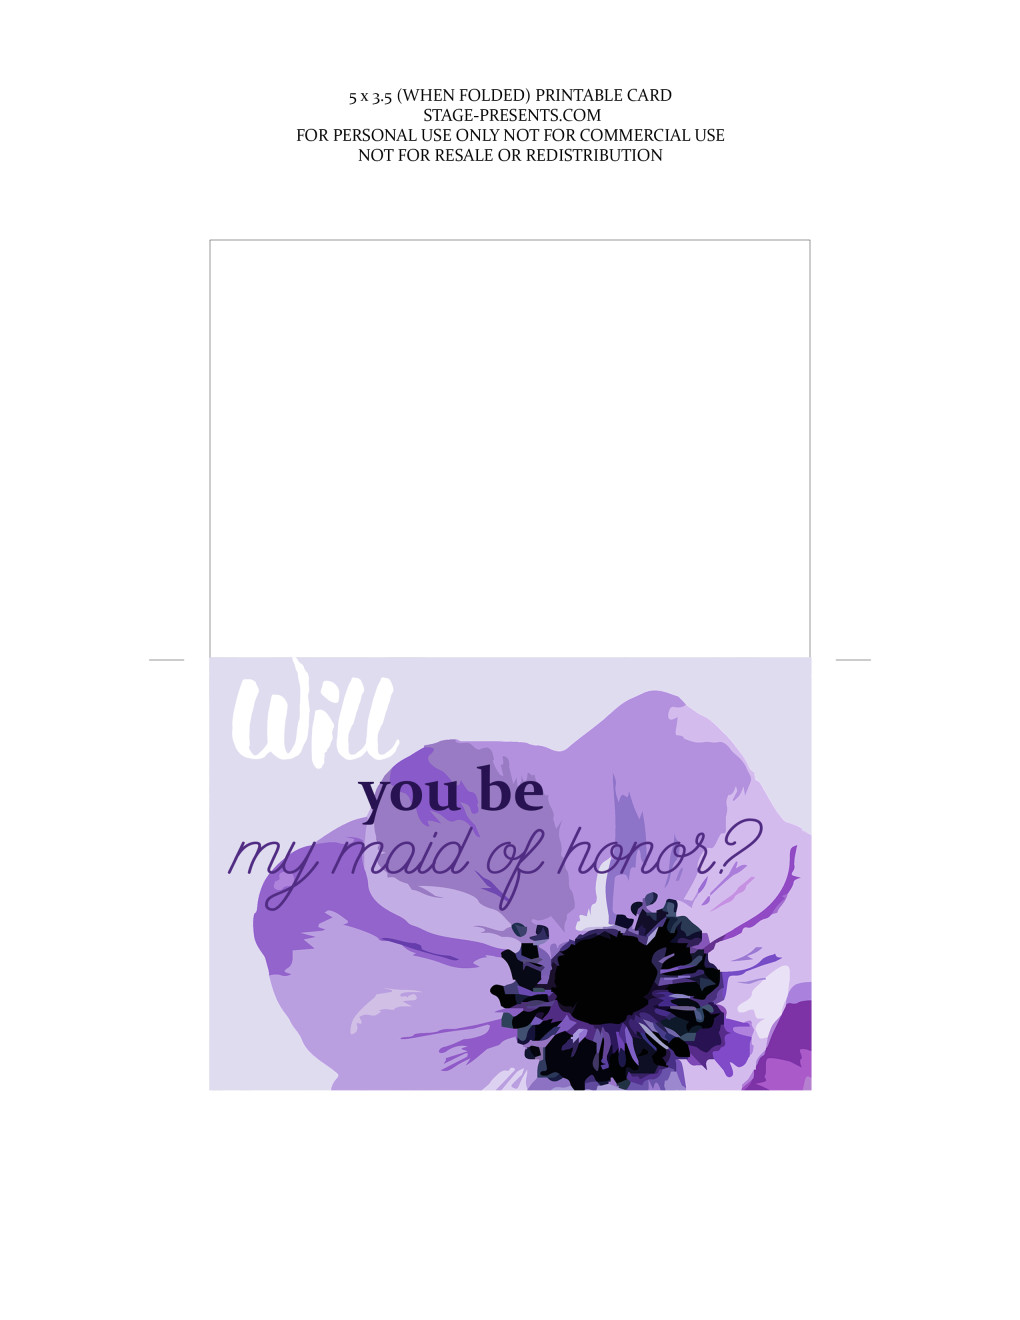 Will You Be My Maid of Honor Card - Future Bride Freebies - stage-presents.com